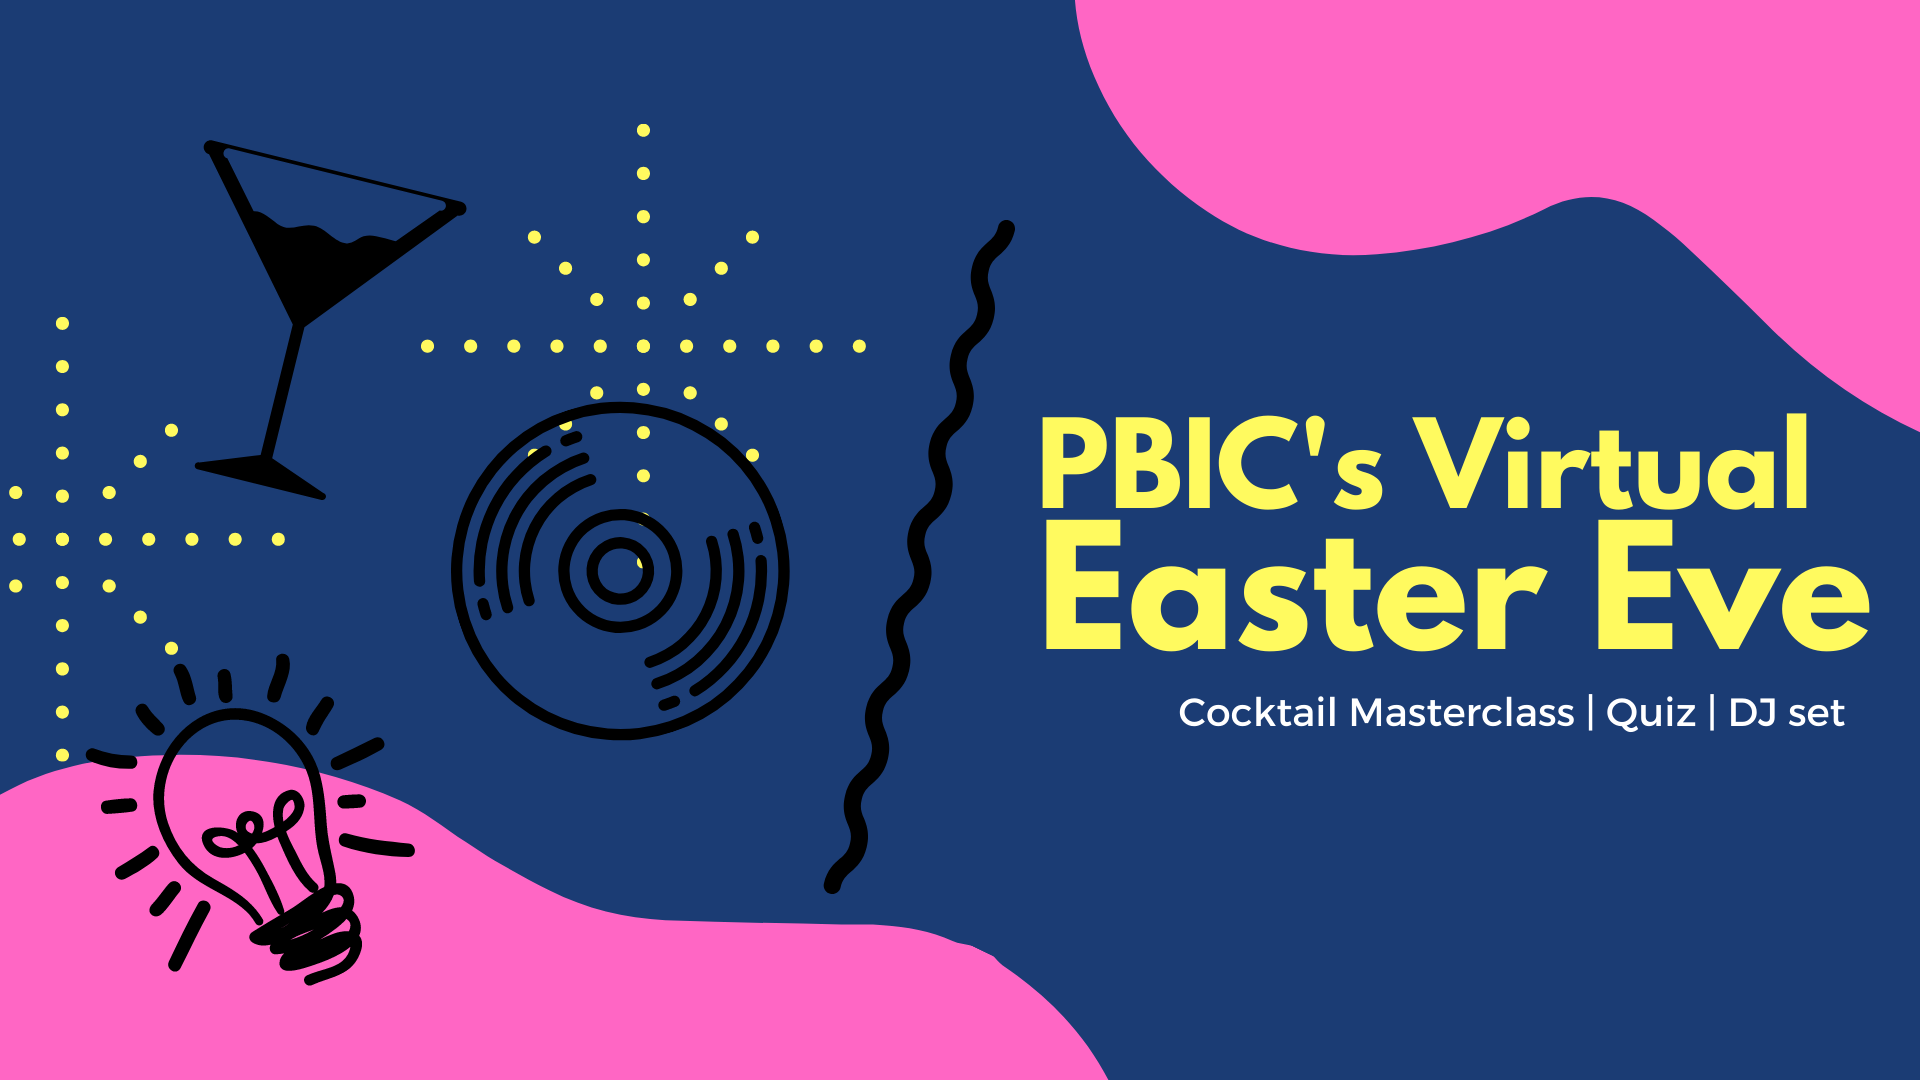 PBIC's Easter Eve Fundraiser (COCKTAILS/QUIZ/DJ SET)